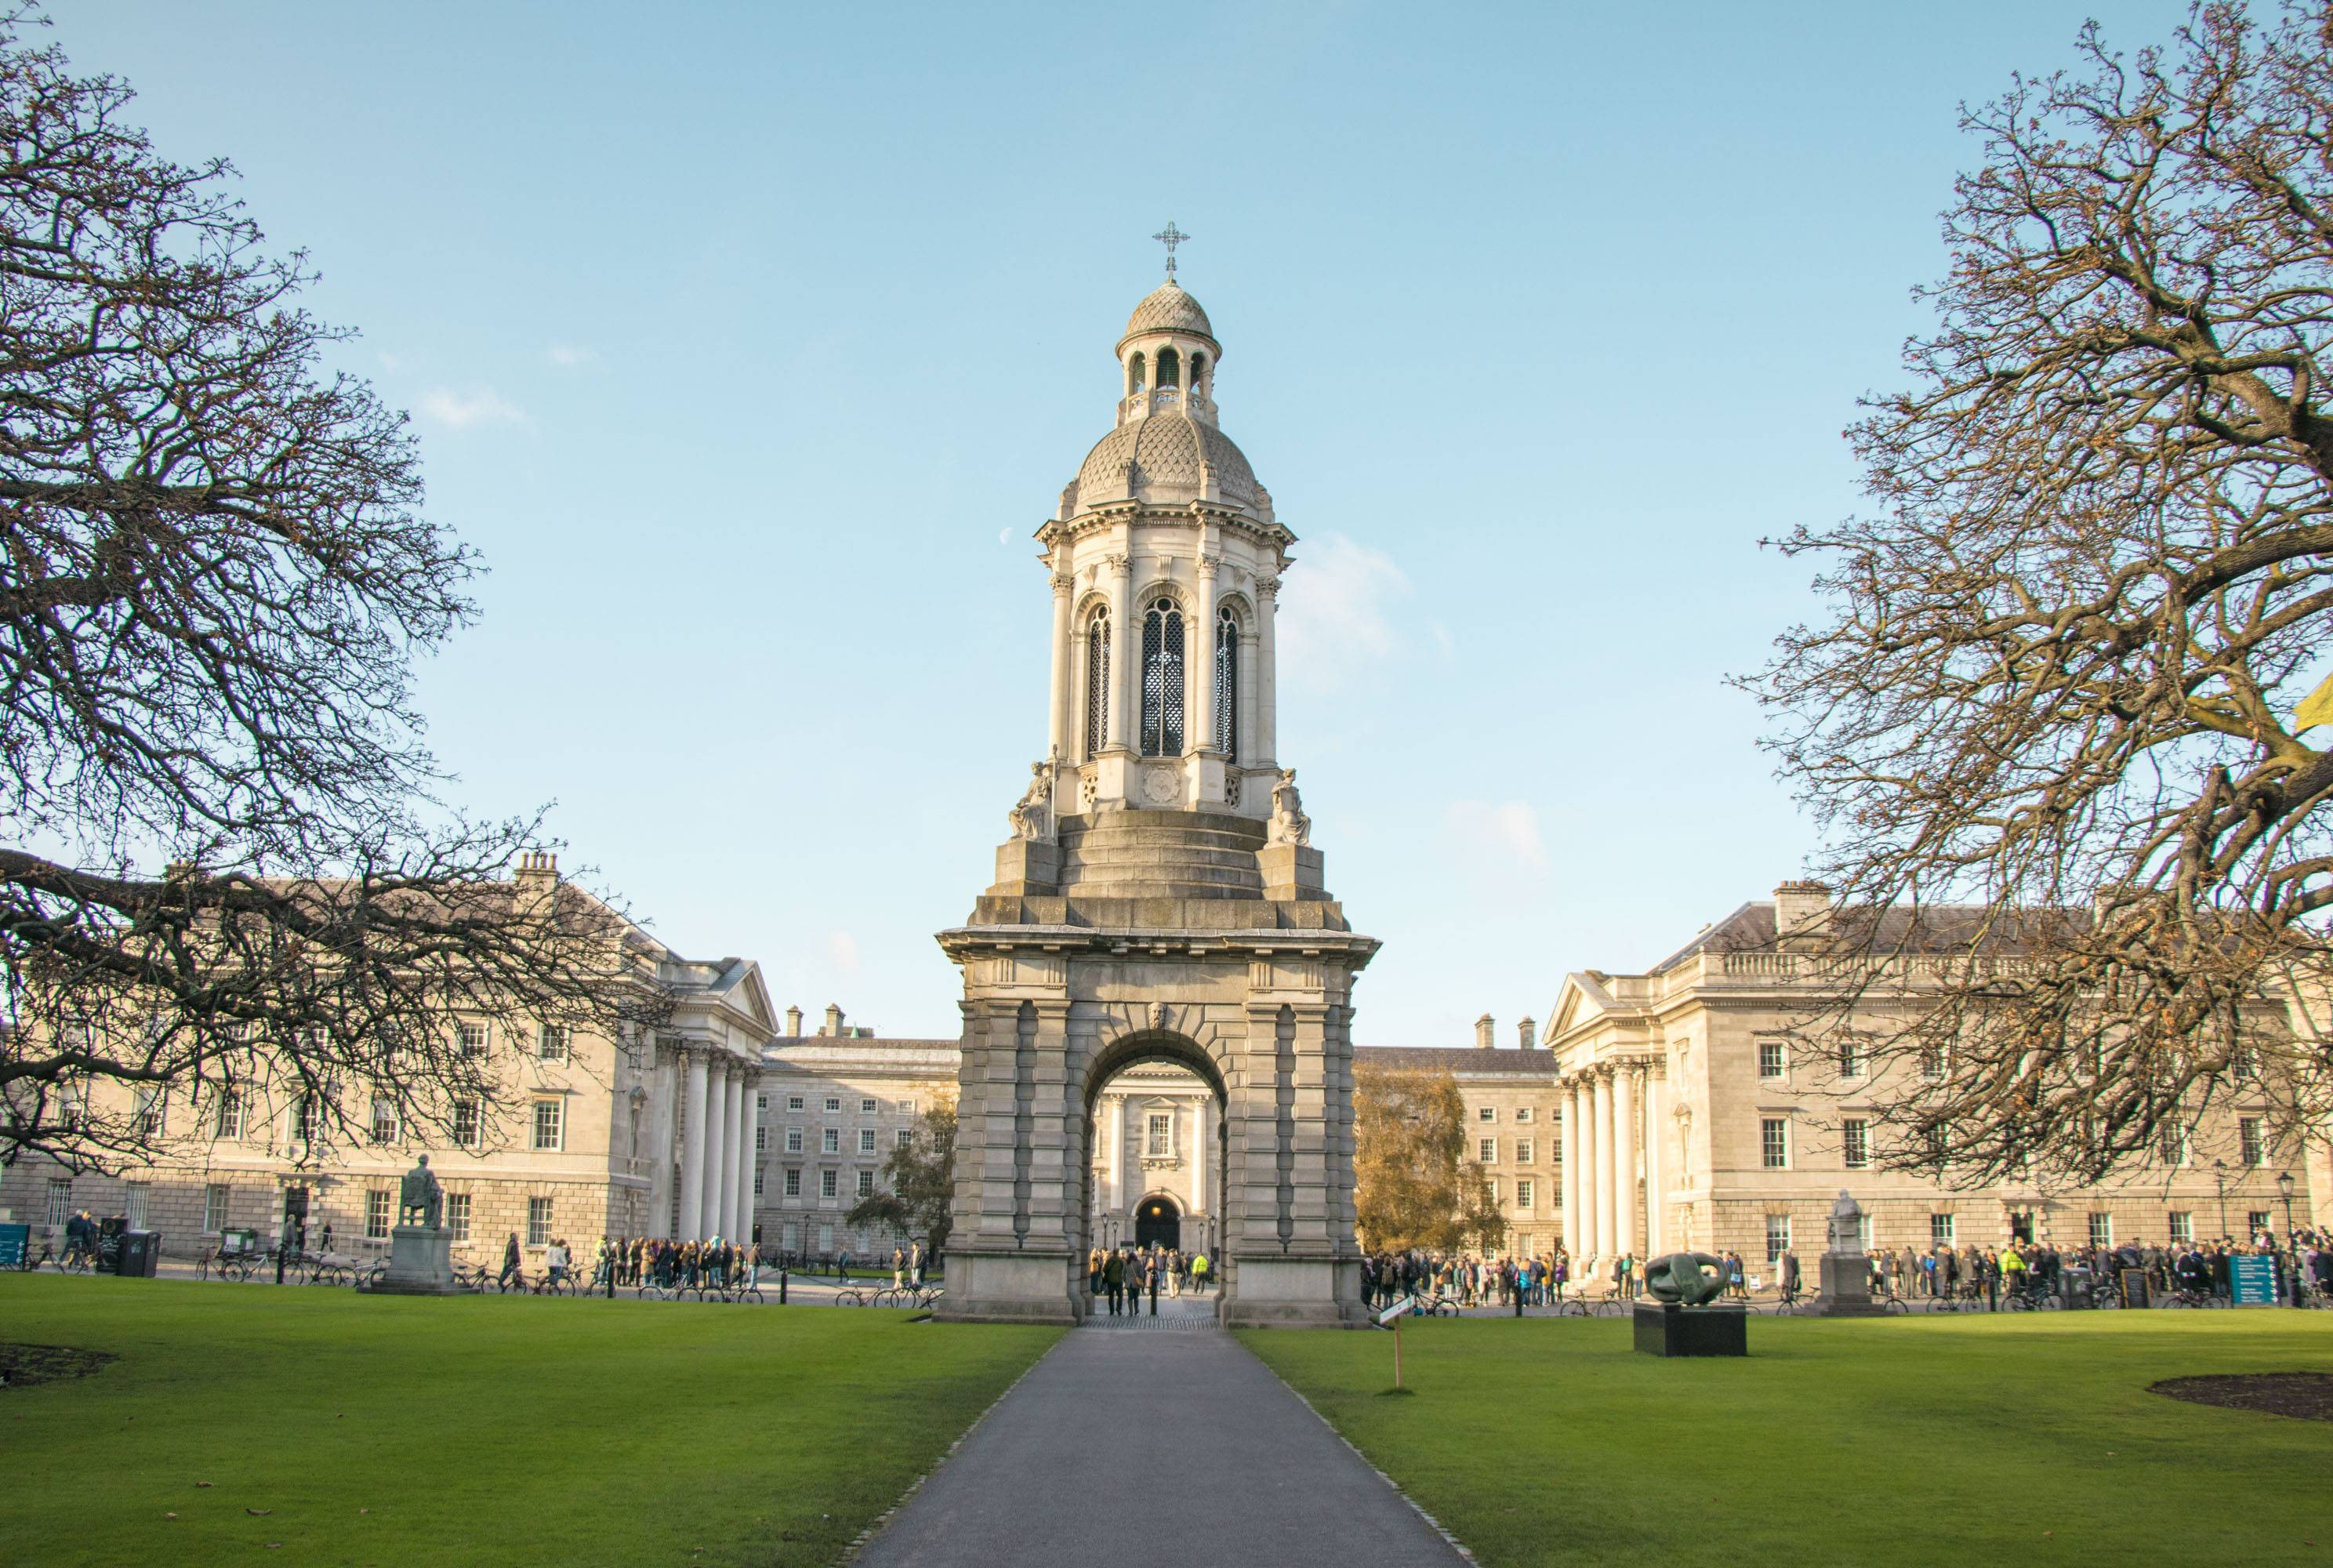 Photo 3: Trinity College - Dublin